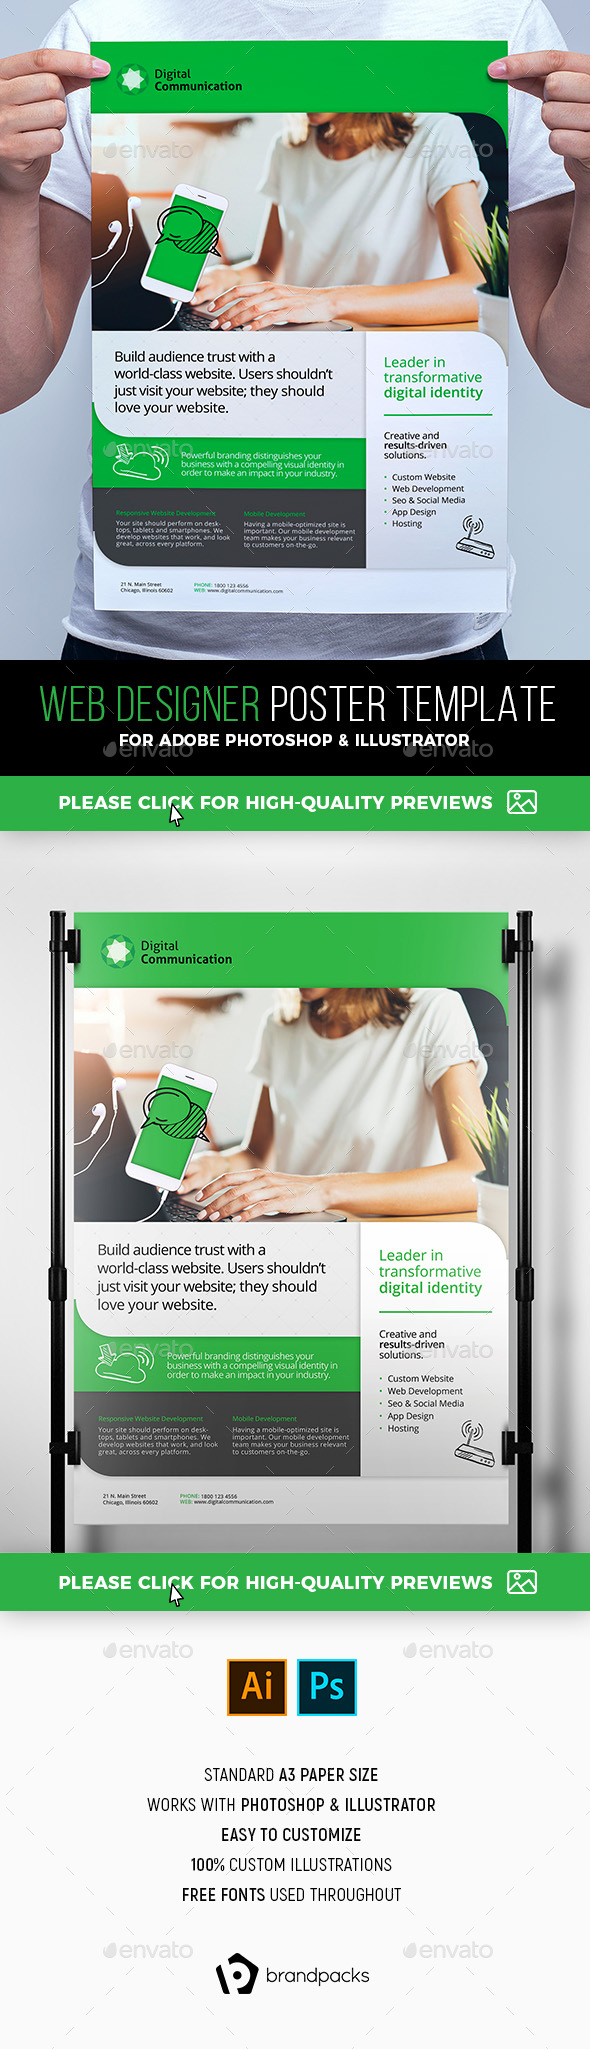 Web Design Service Poster Template - Corporate Flyers